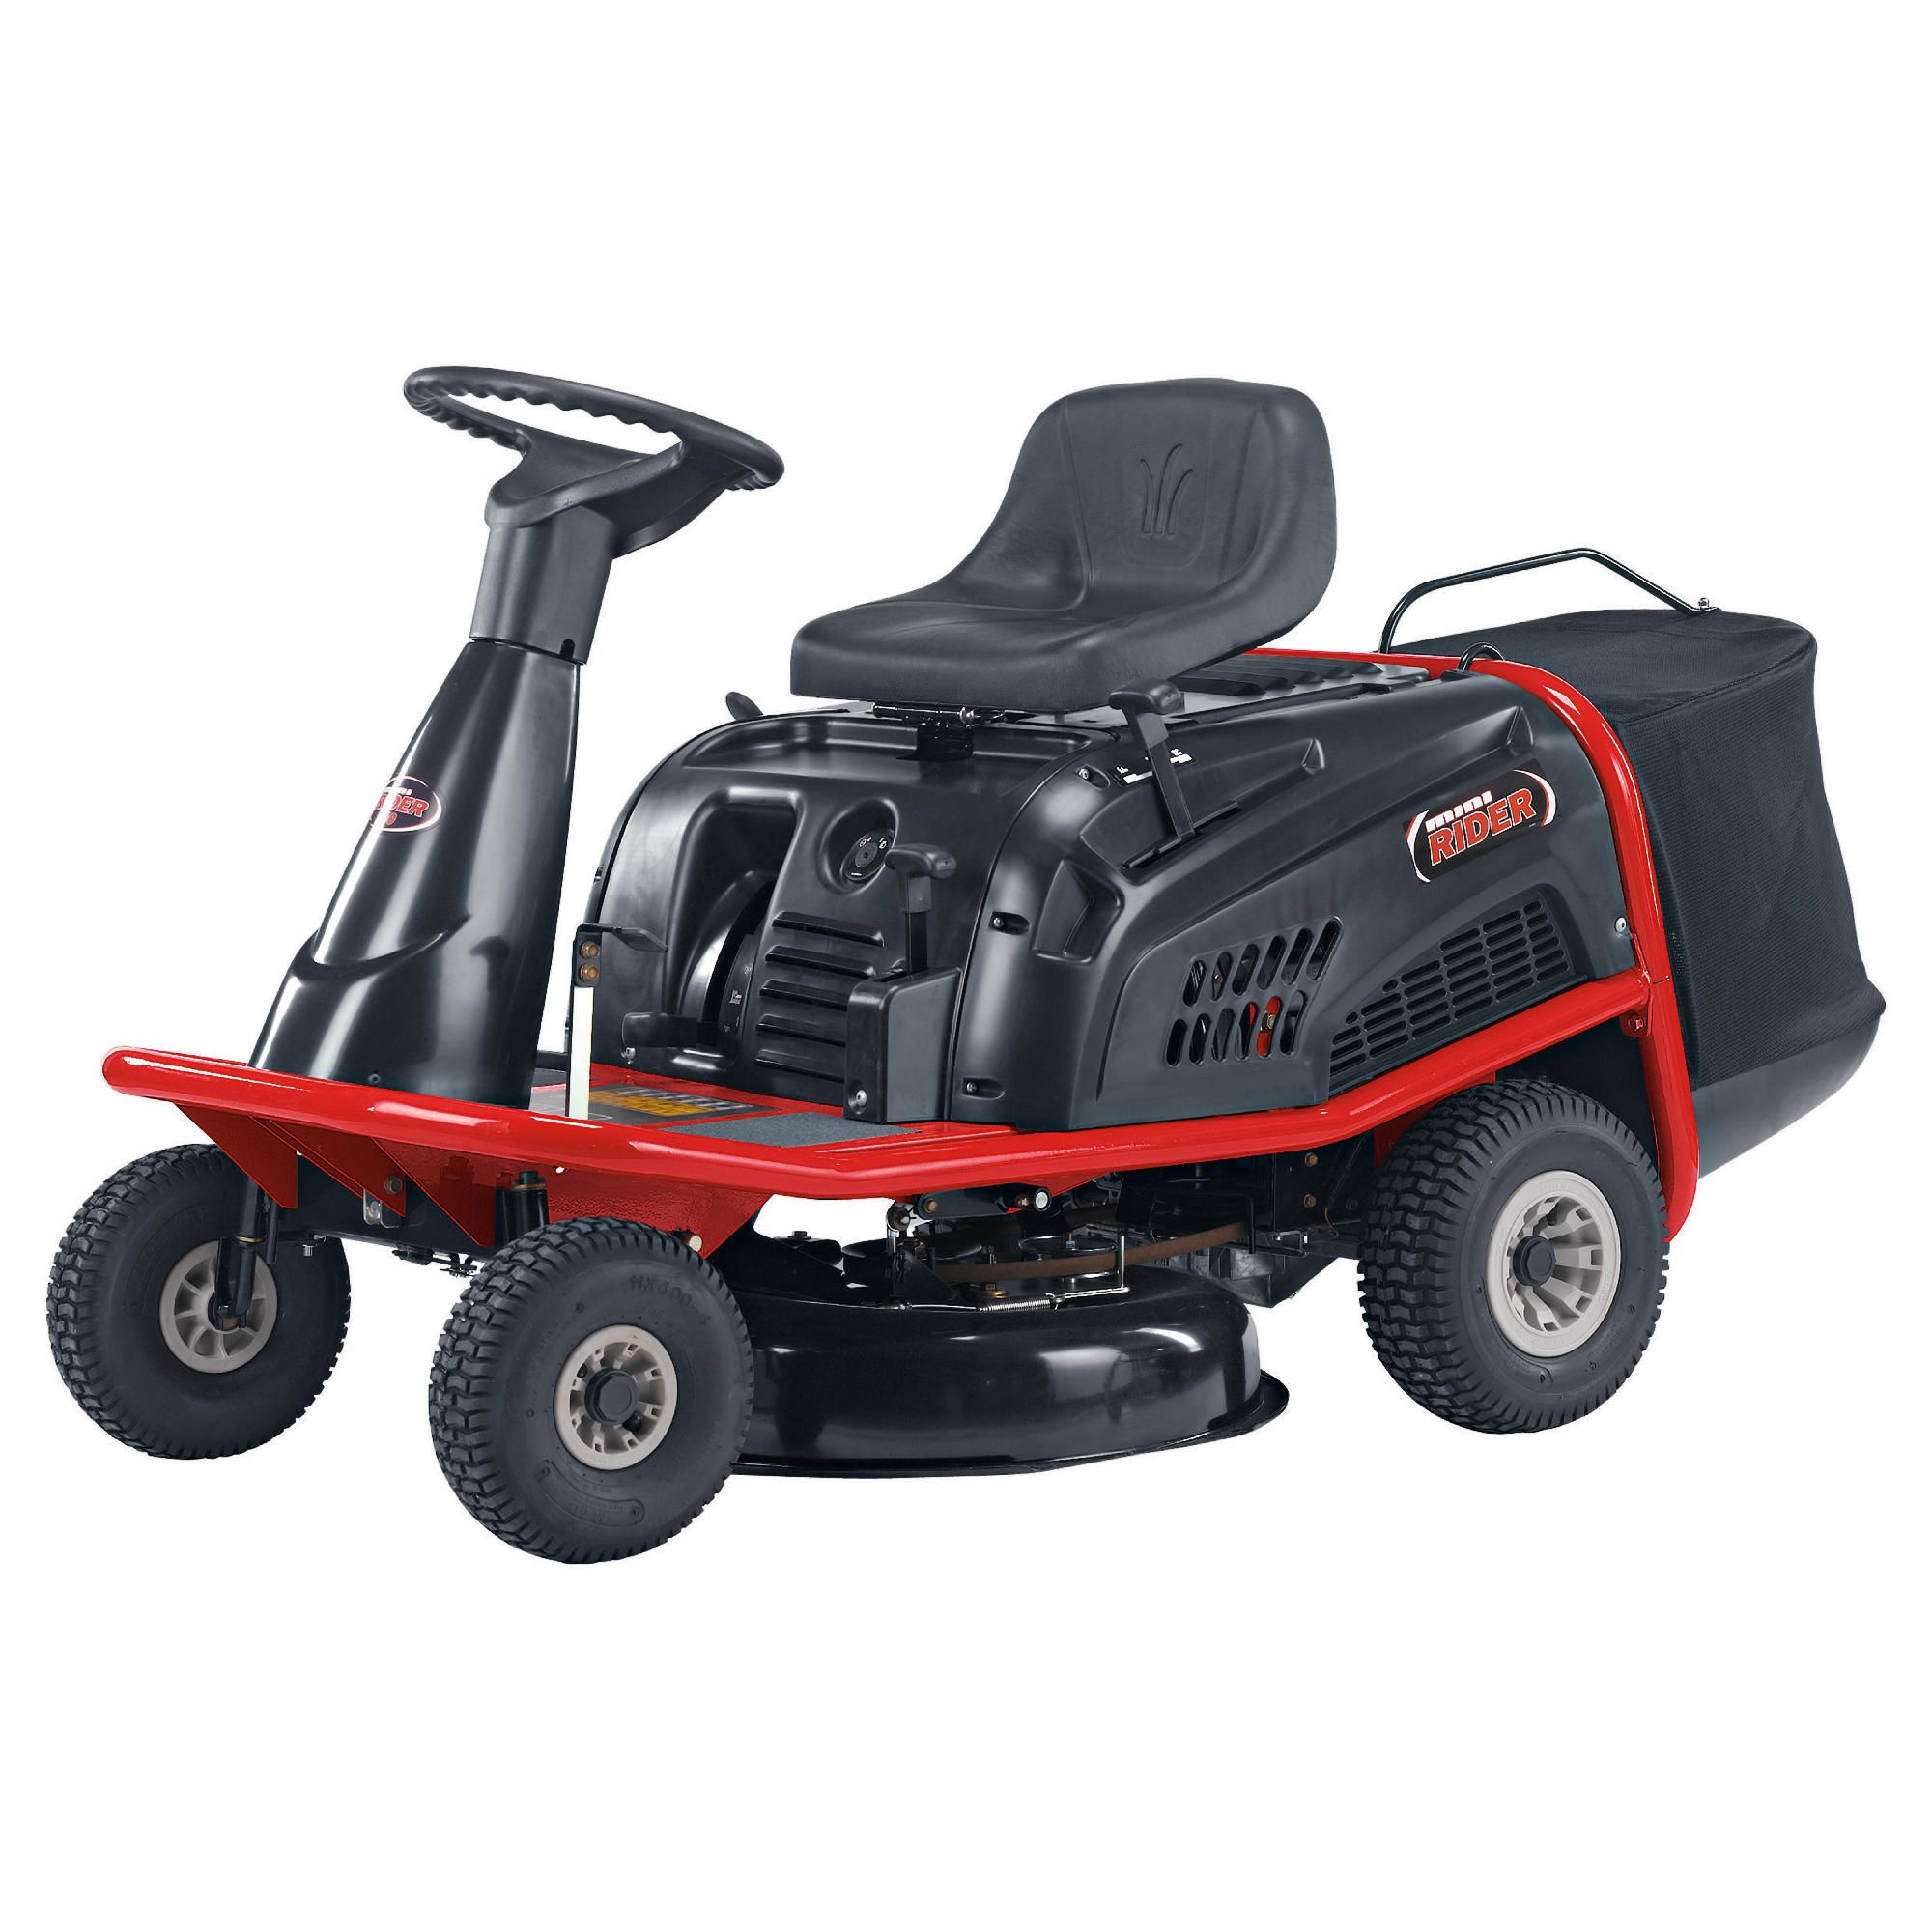 MTD Briggs & Stratton 6.5HP Ride on Lawnmower at Tesco Direct